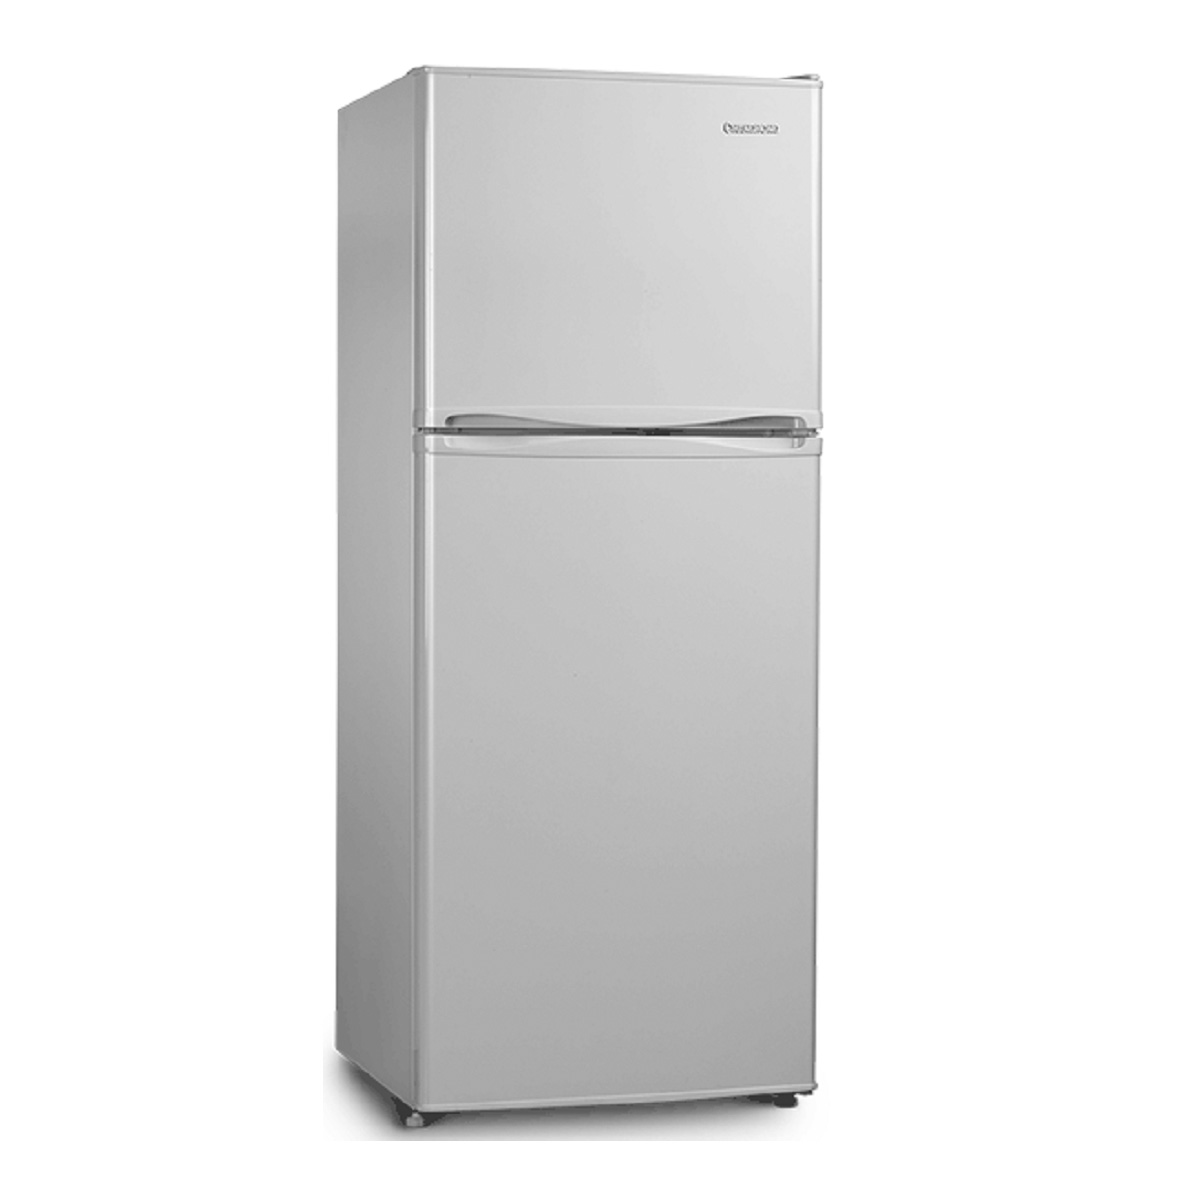 Changhong Top Mount Fridge FTM419A01W